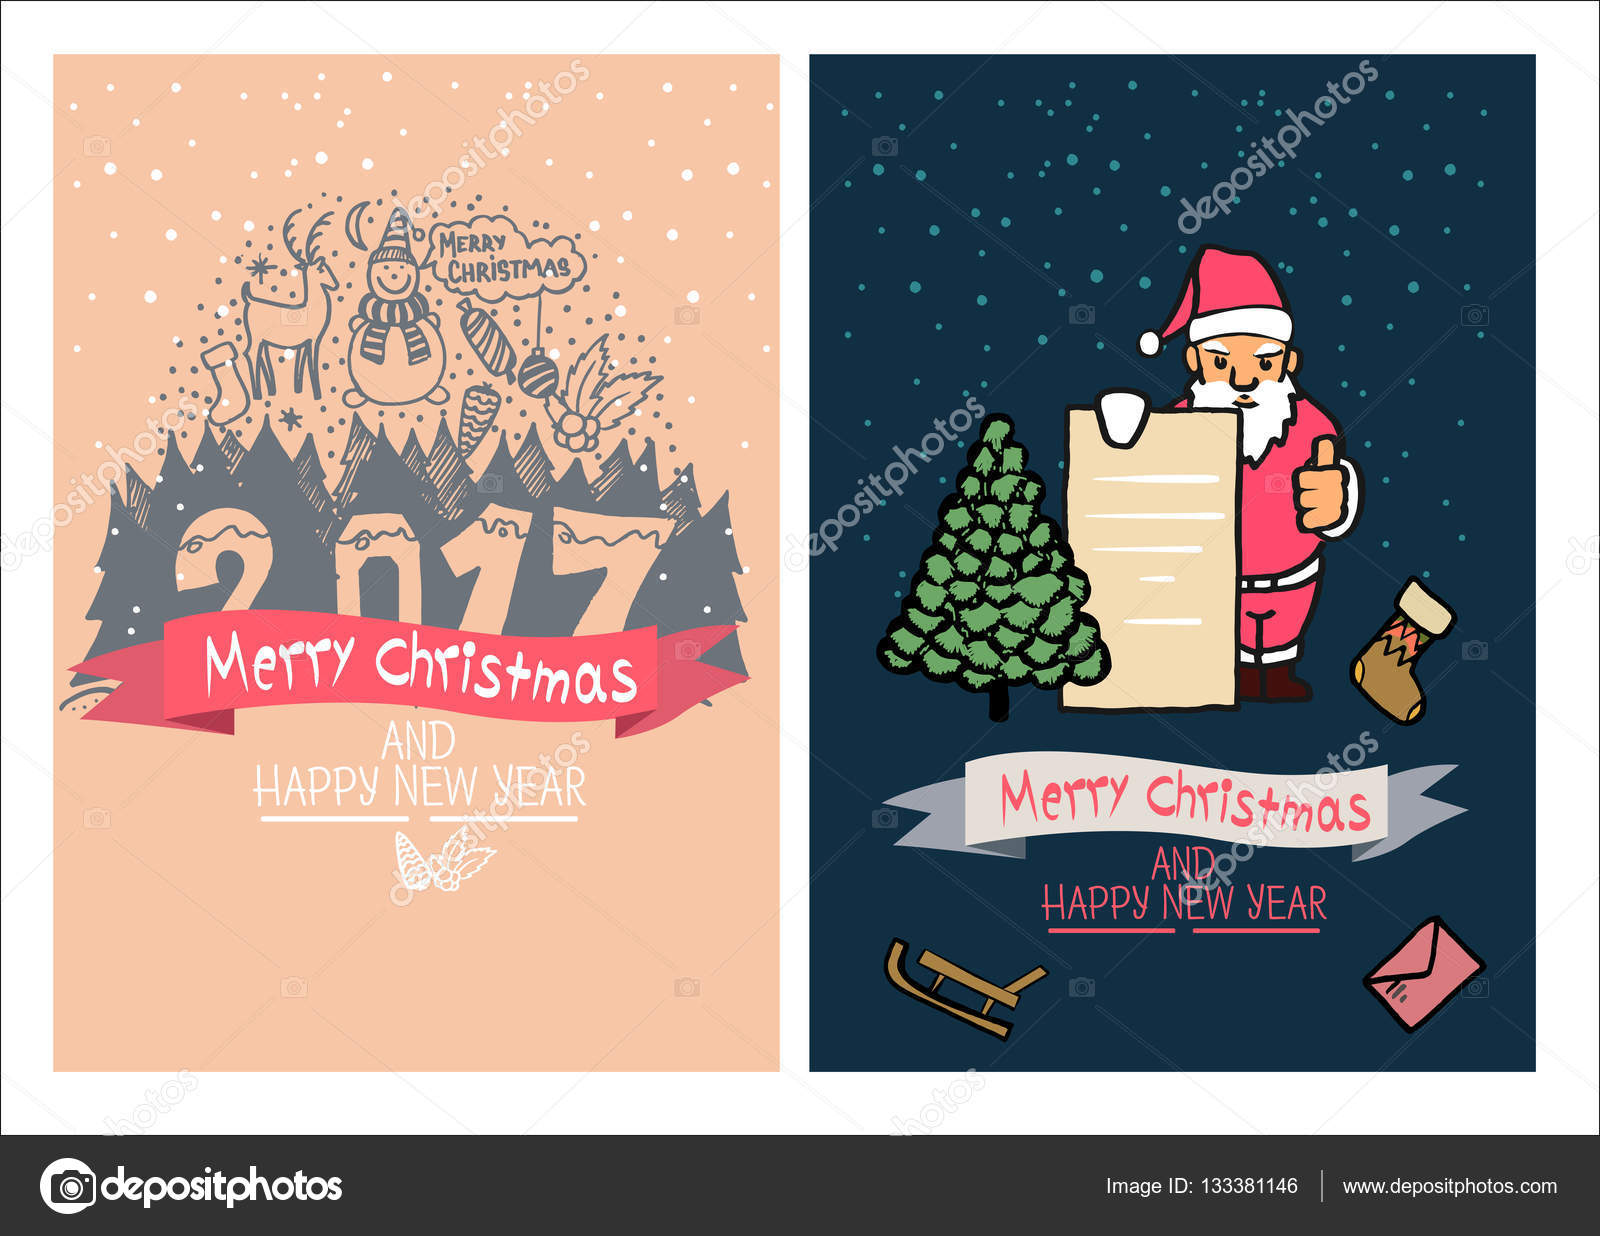 cute christmas card happy new year family holidays greeting templates